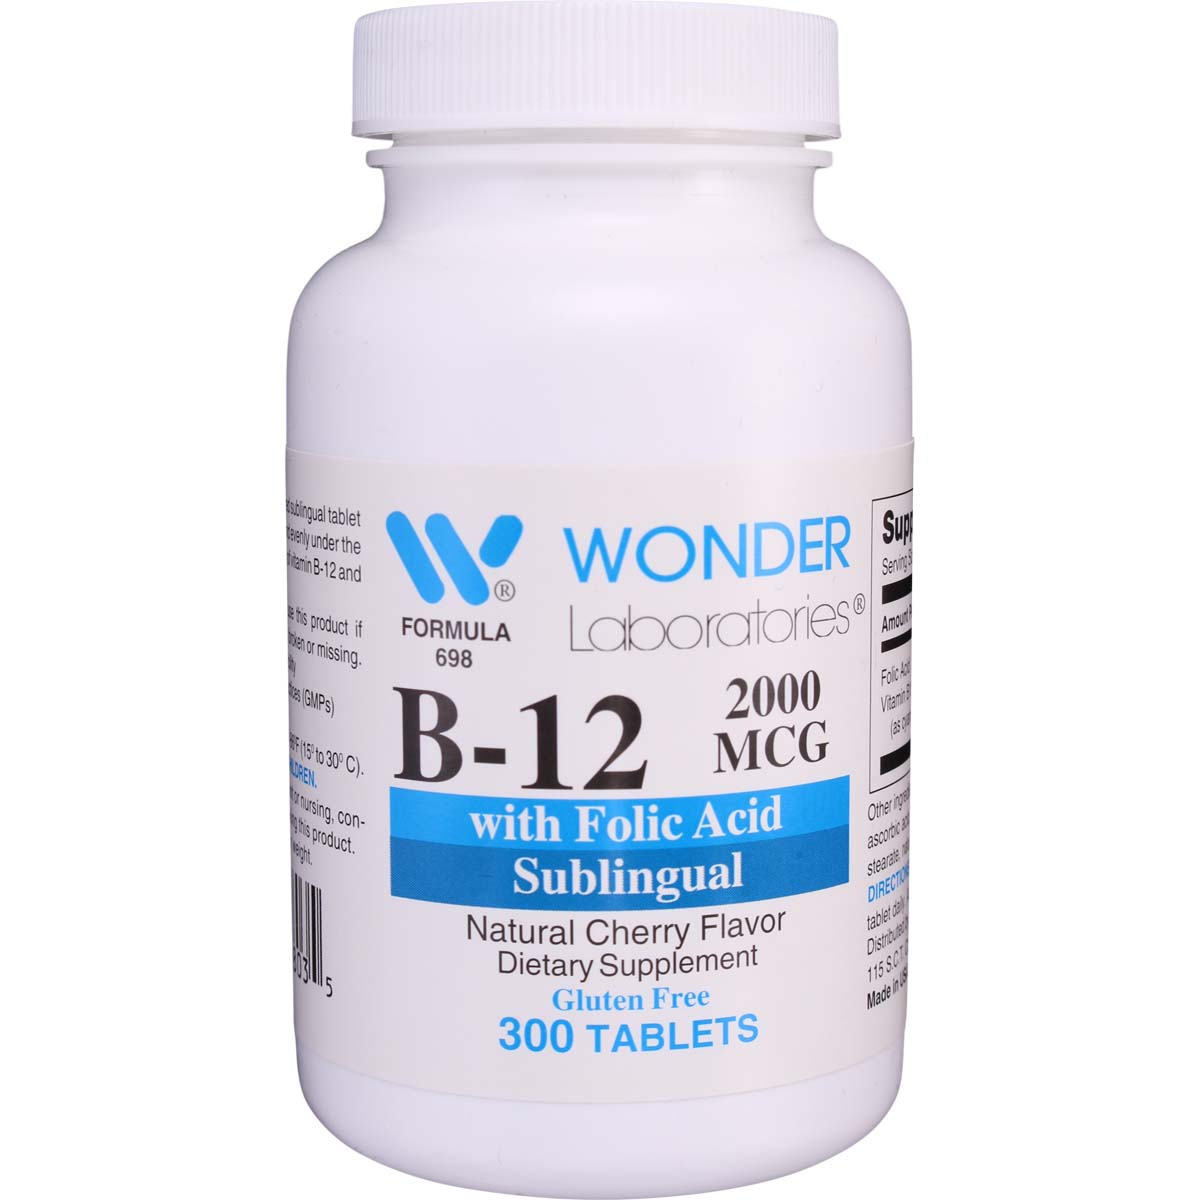 Sublingual B12 no better than just swallowing - Jack Norris RD